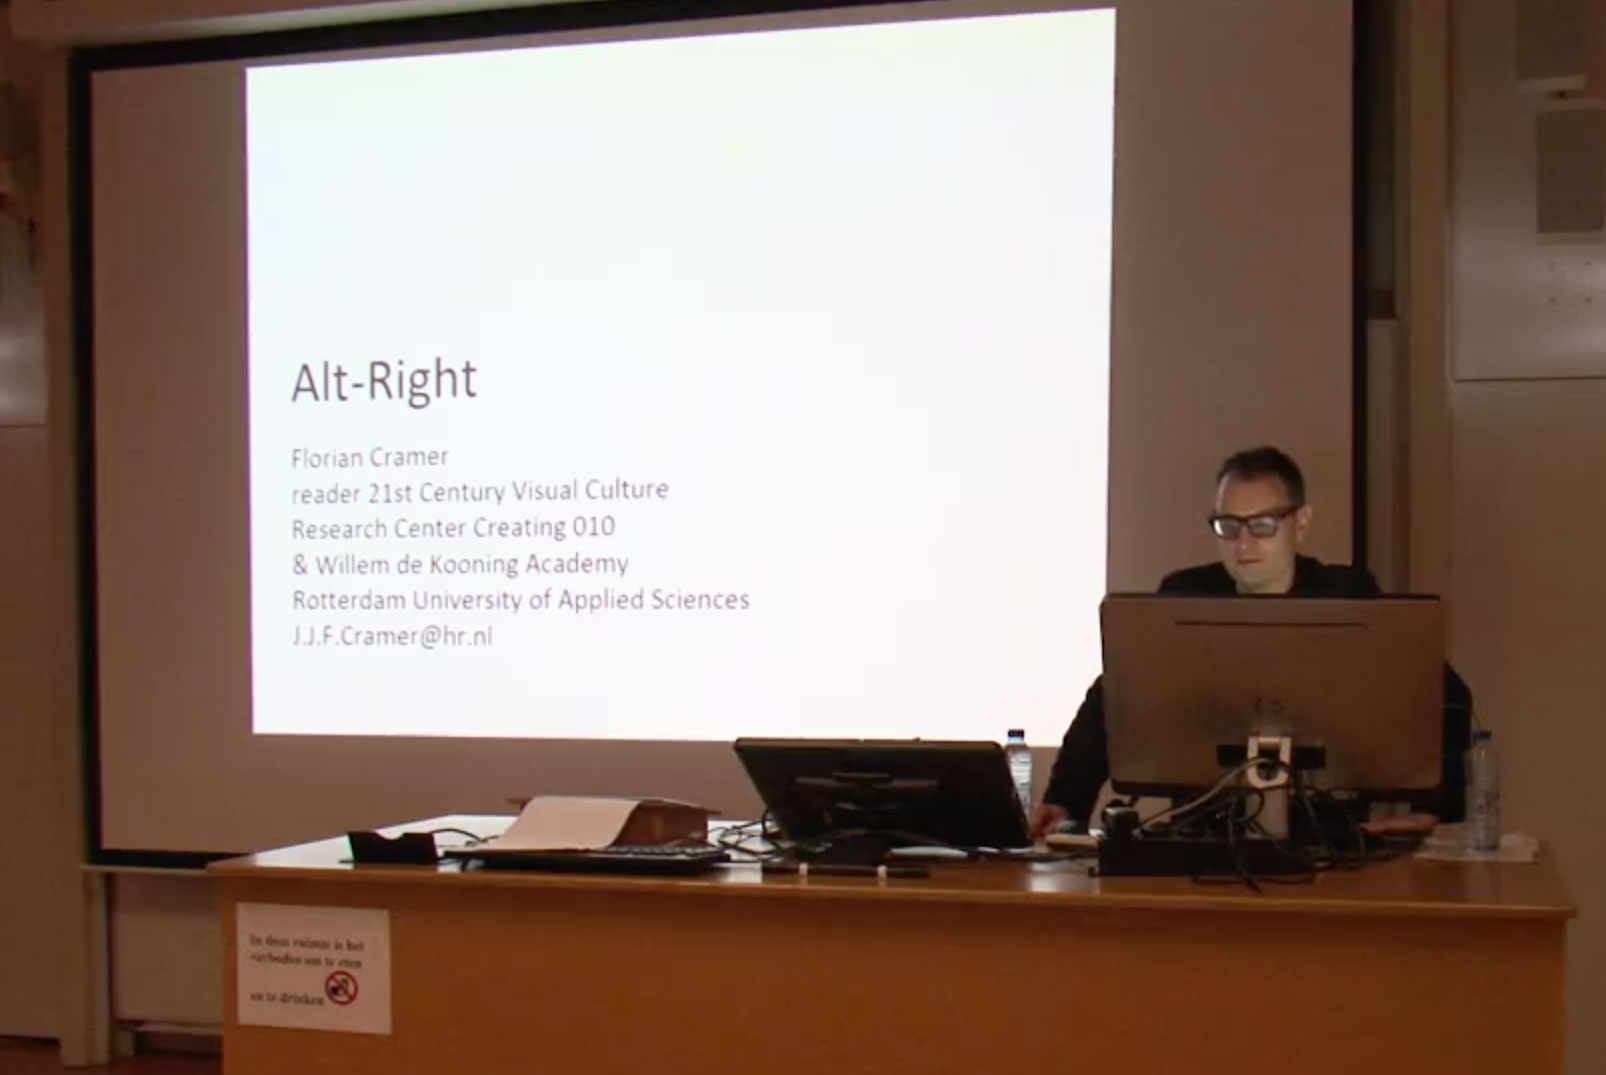 Alt-Right, A Lecture by Florian Cramer: Screening